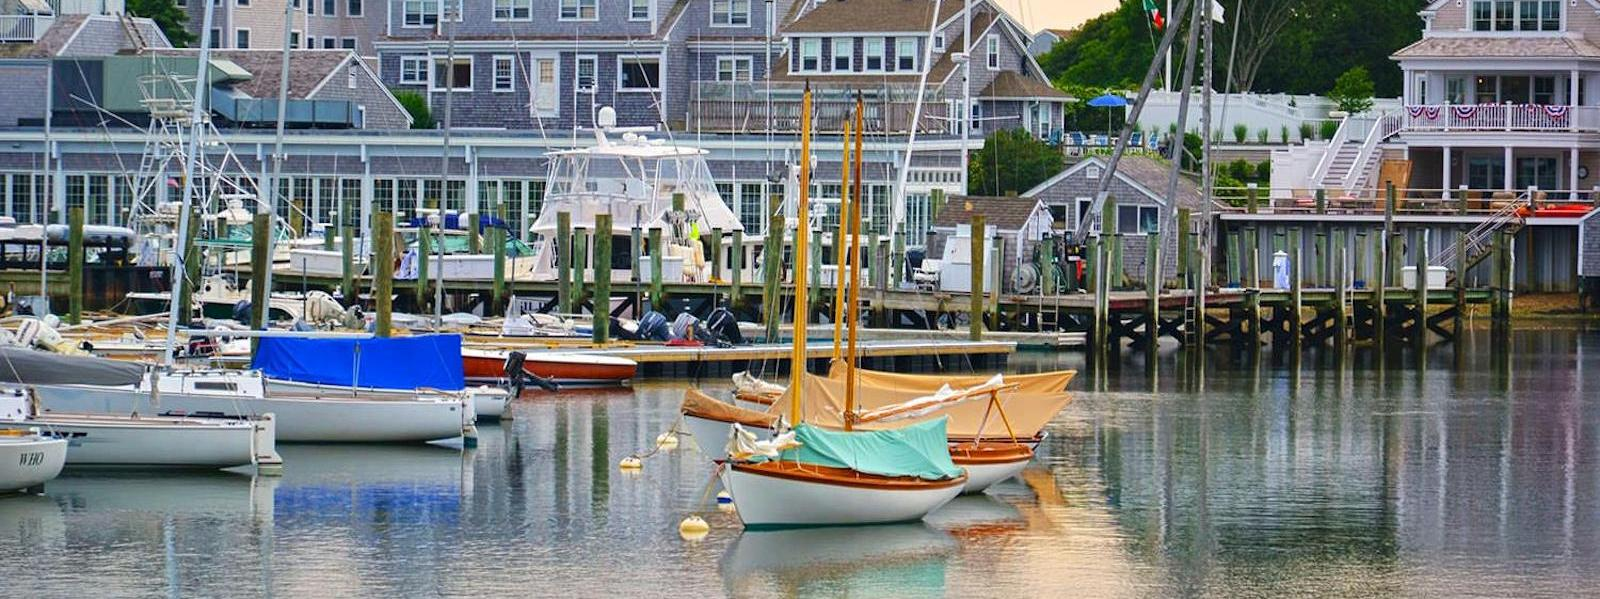 Cape Cod Harbor